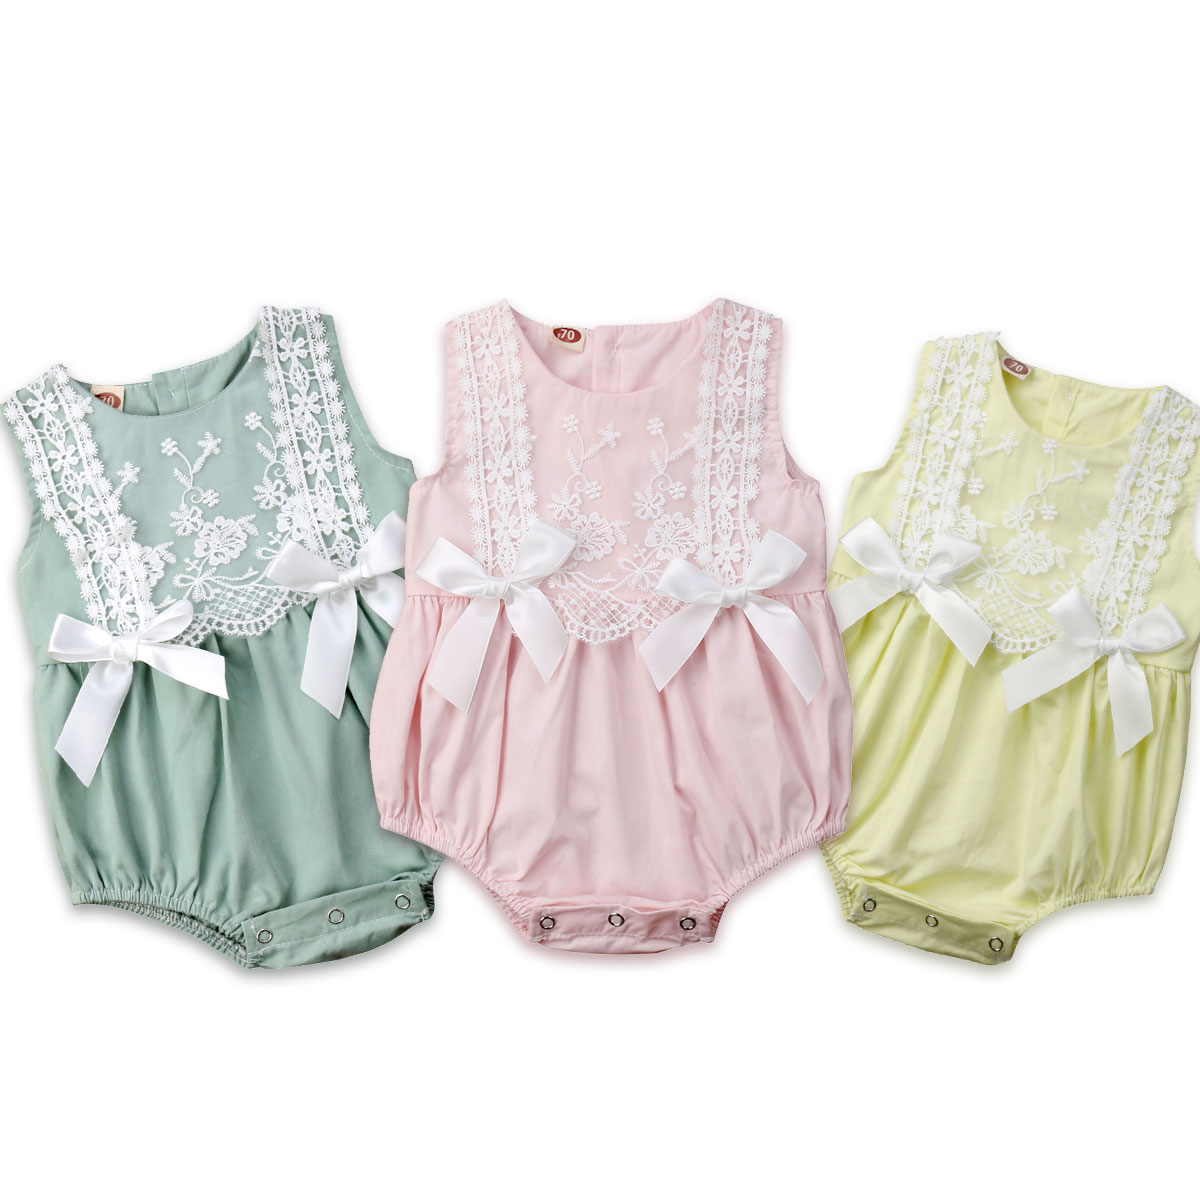 b4fbd1647 Infant Newborn Baby Girls Clothing Lace Ruffles Rompers Jumpsuit ...